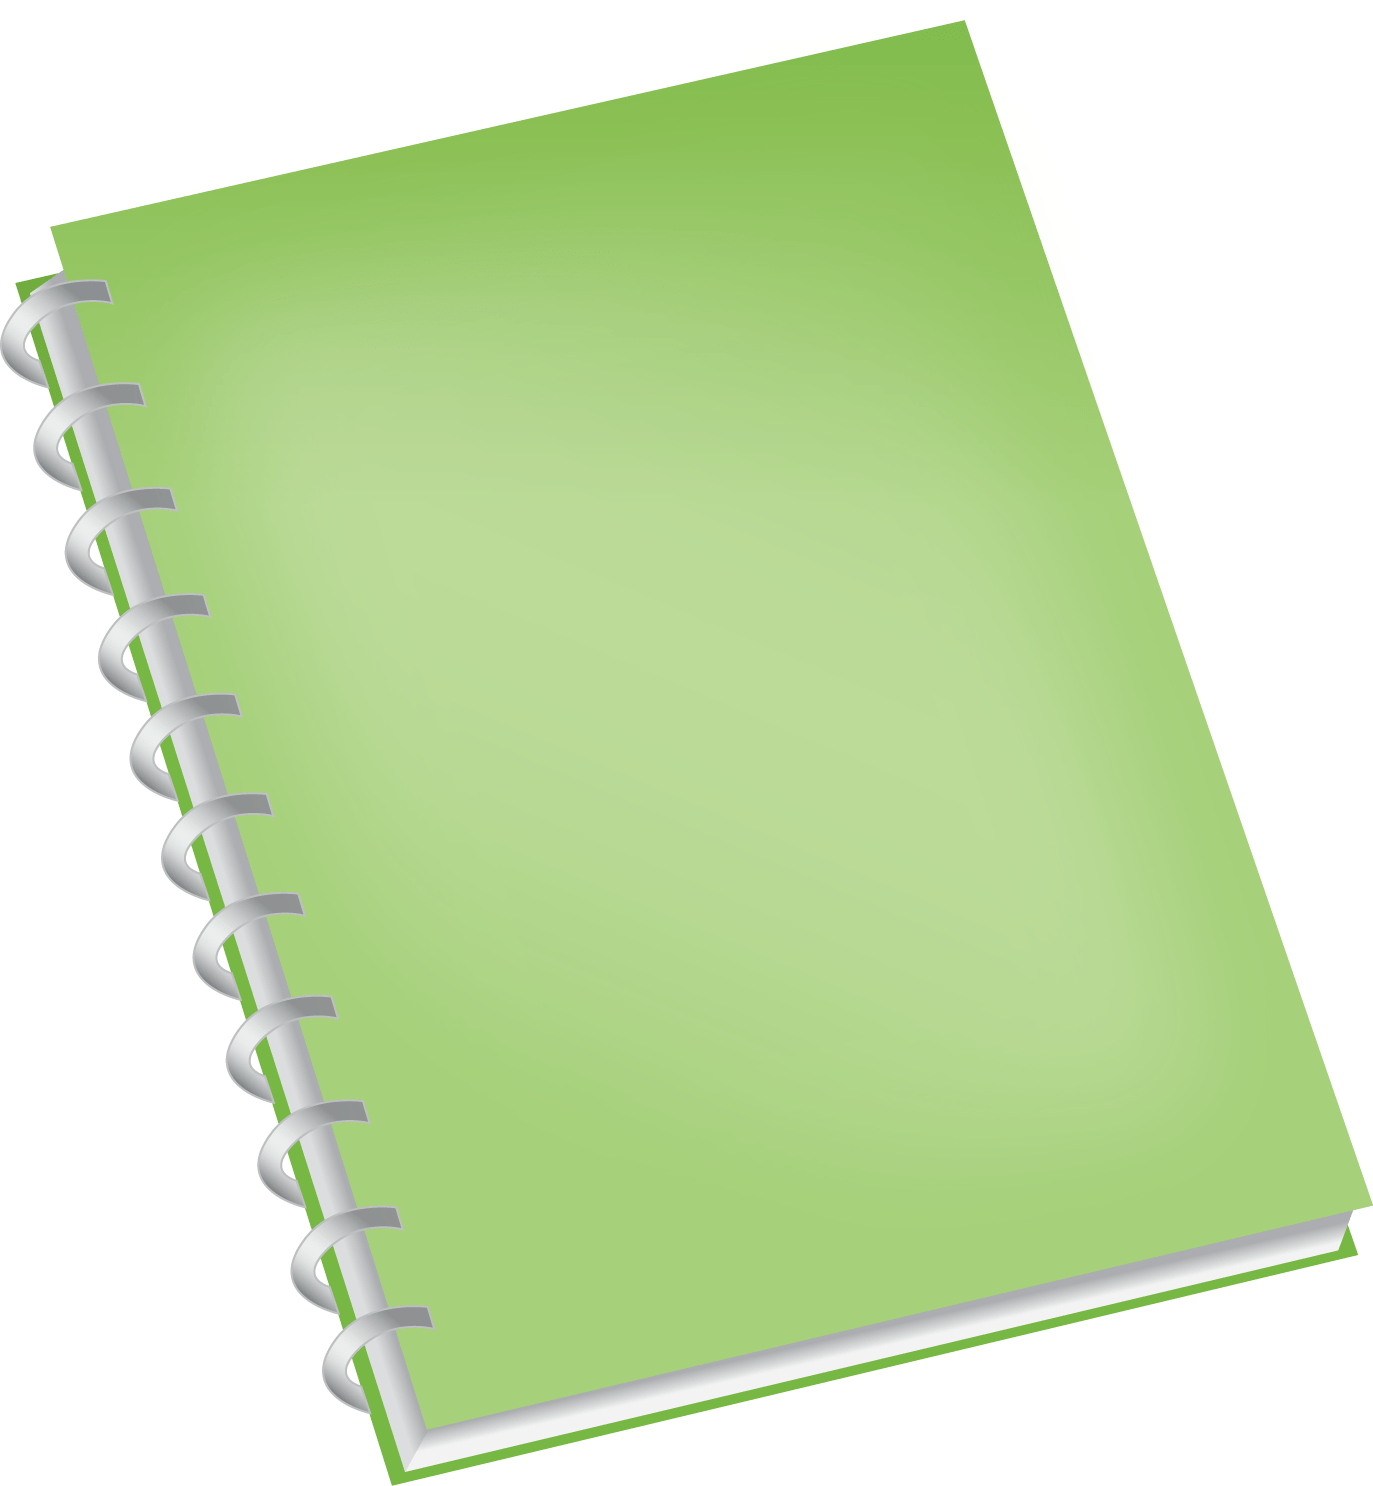 Green Notebook transparent PNG.